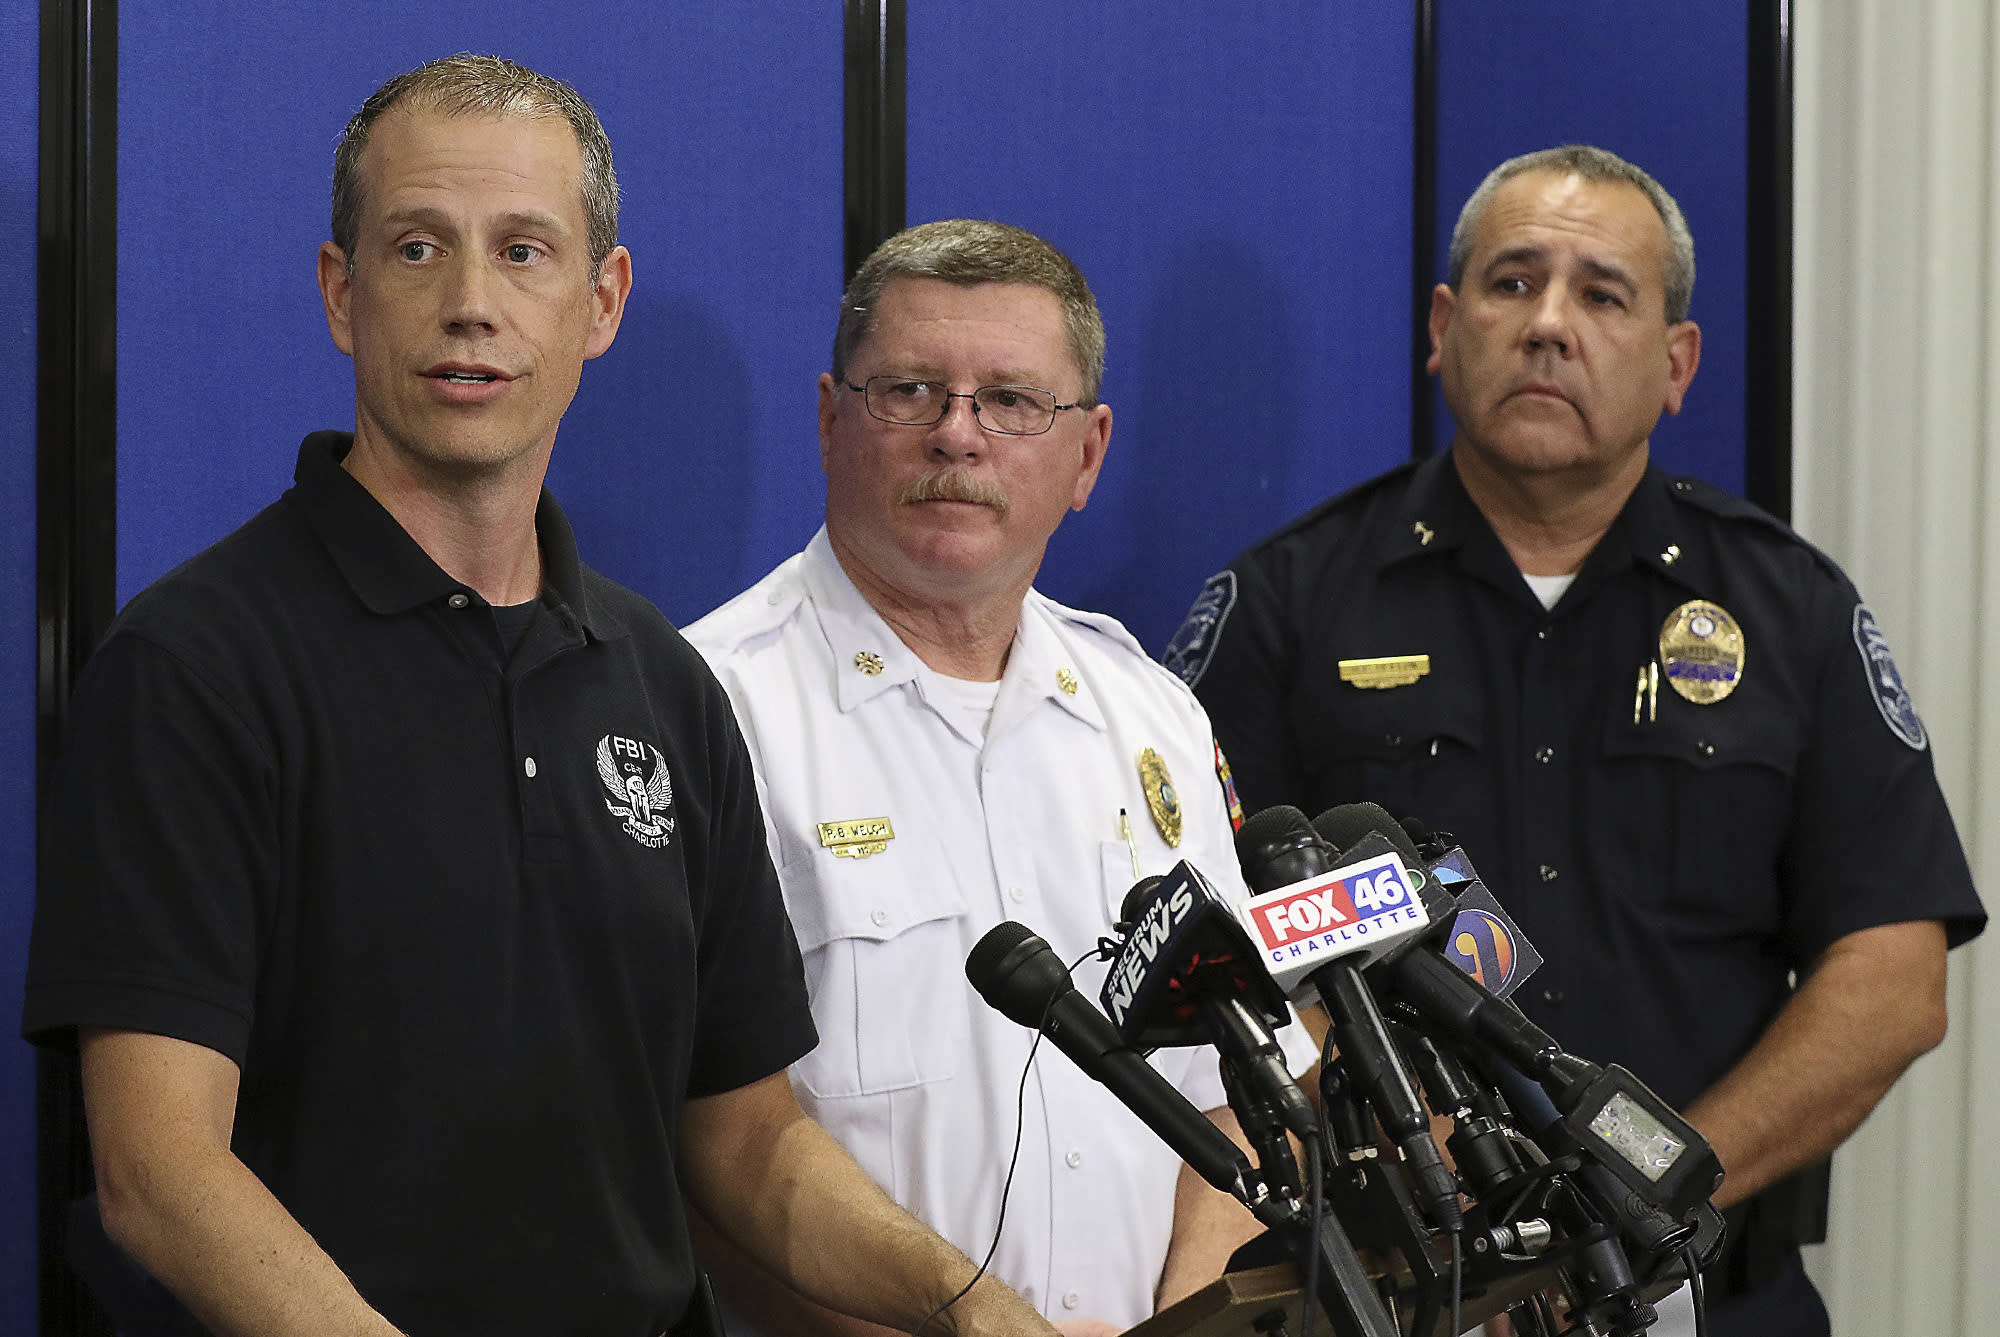 Special Agent Jason Kaplan of the FBI, Gastonia Fire Chief Phil Welch, and Gastonia Police Chief Robert Helton, answer questions during a press conference Tuesday September 25, 2018, in Gastonia, N.C. to give updates on the search for six-year-old Maddox Ritch who went missing September 22 from Rankin Lake Park in Gastonia. (John Clark/The Gaston Gazette via AP)